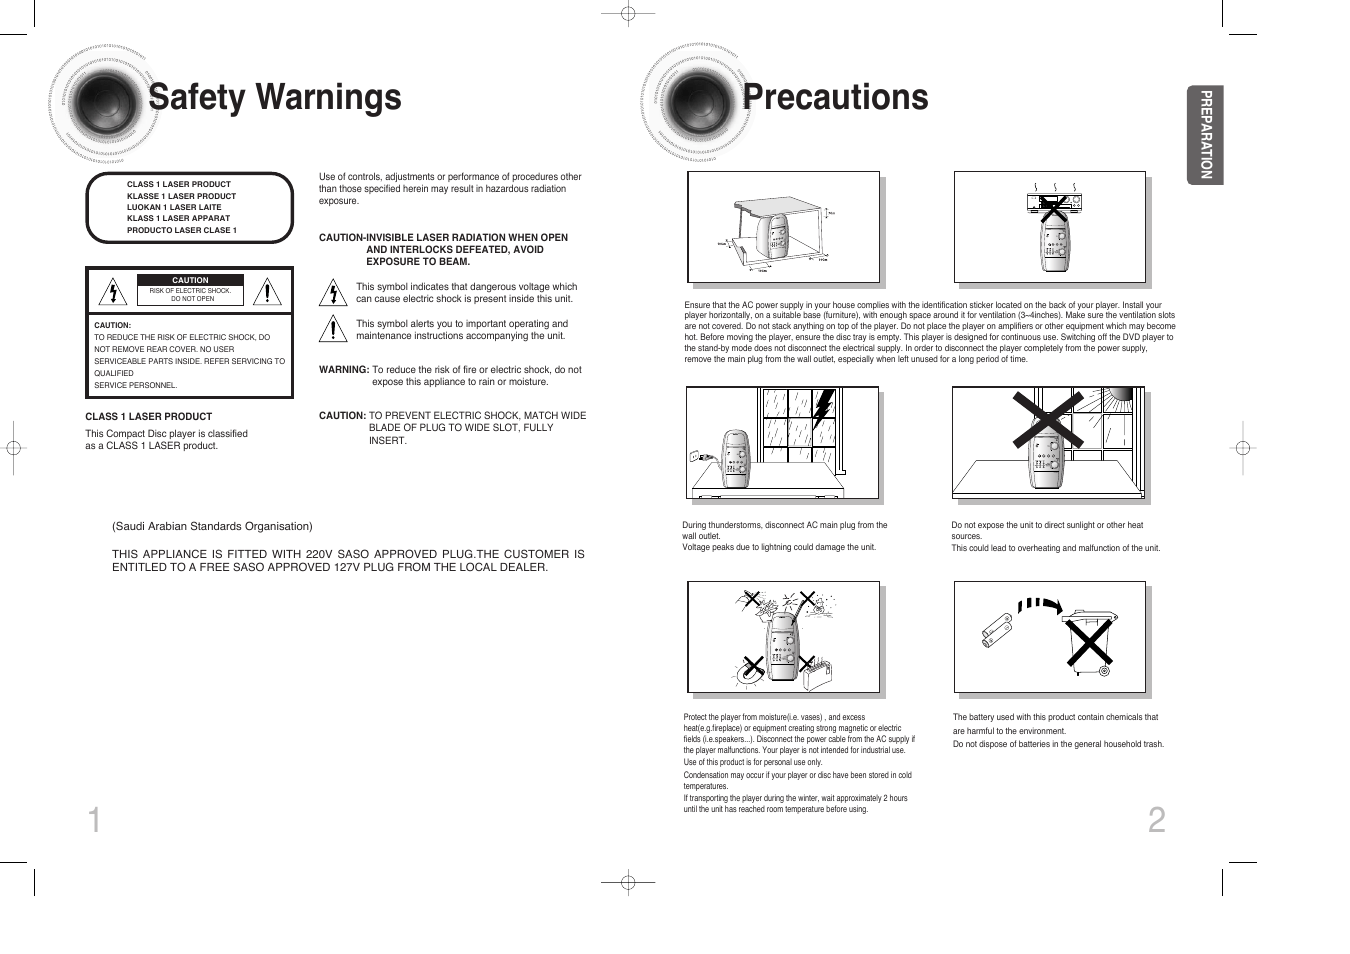 Safety warnings, Precautions, 12 safety warnings